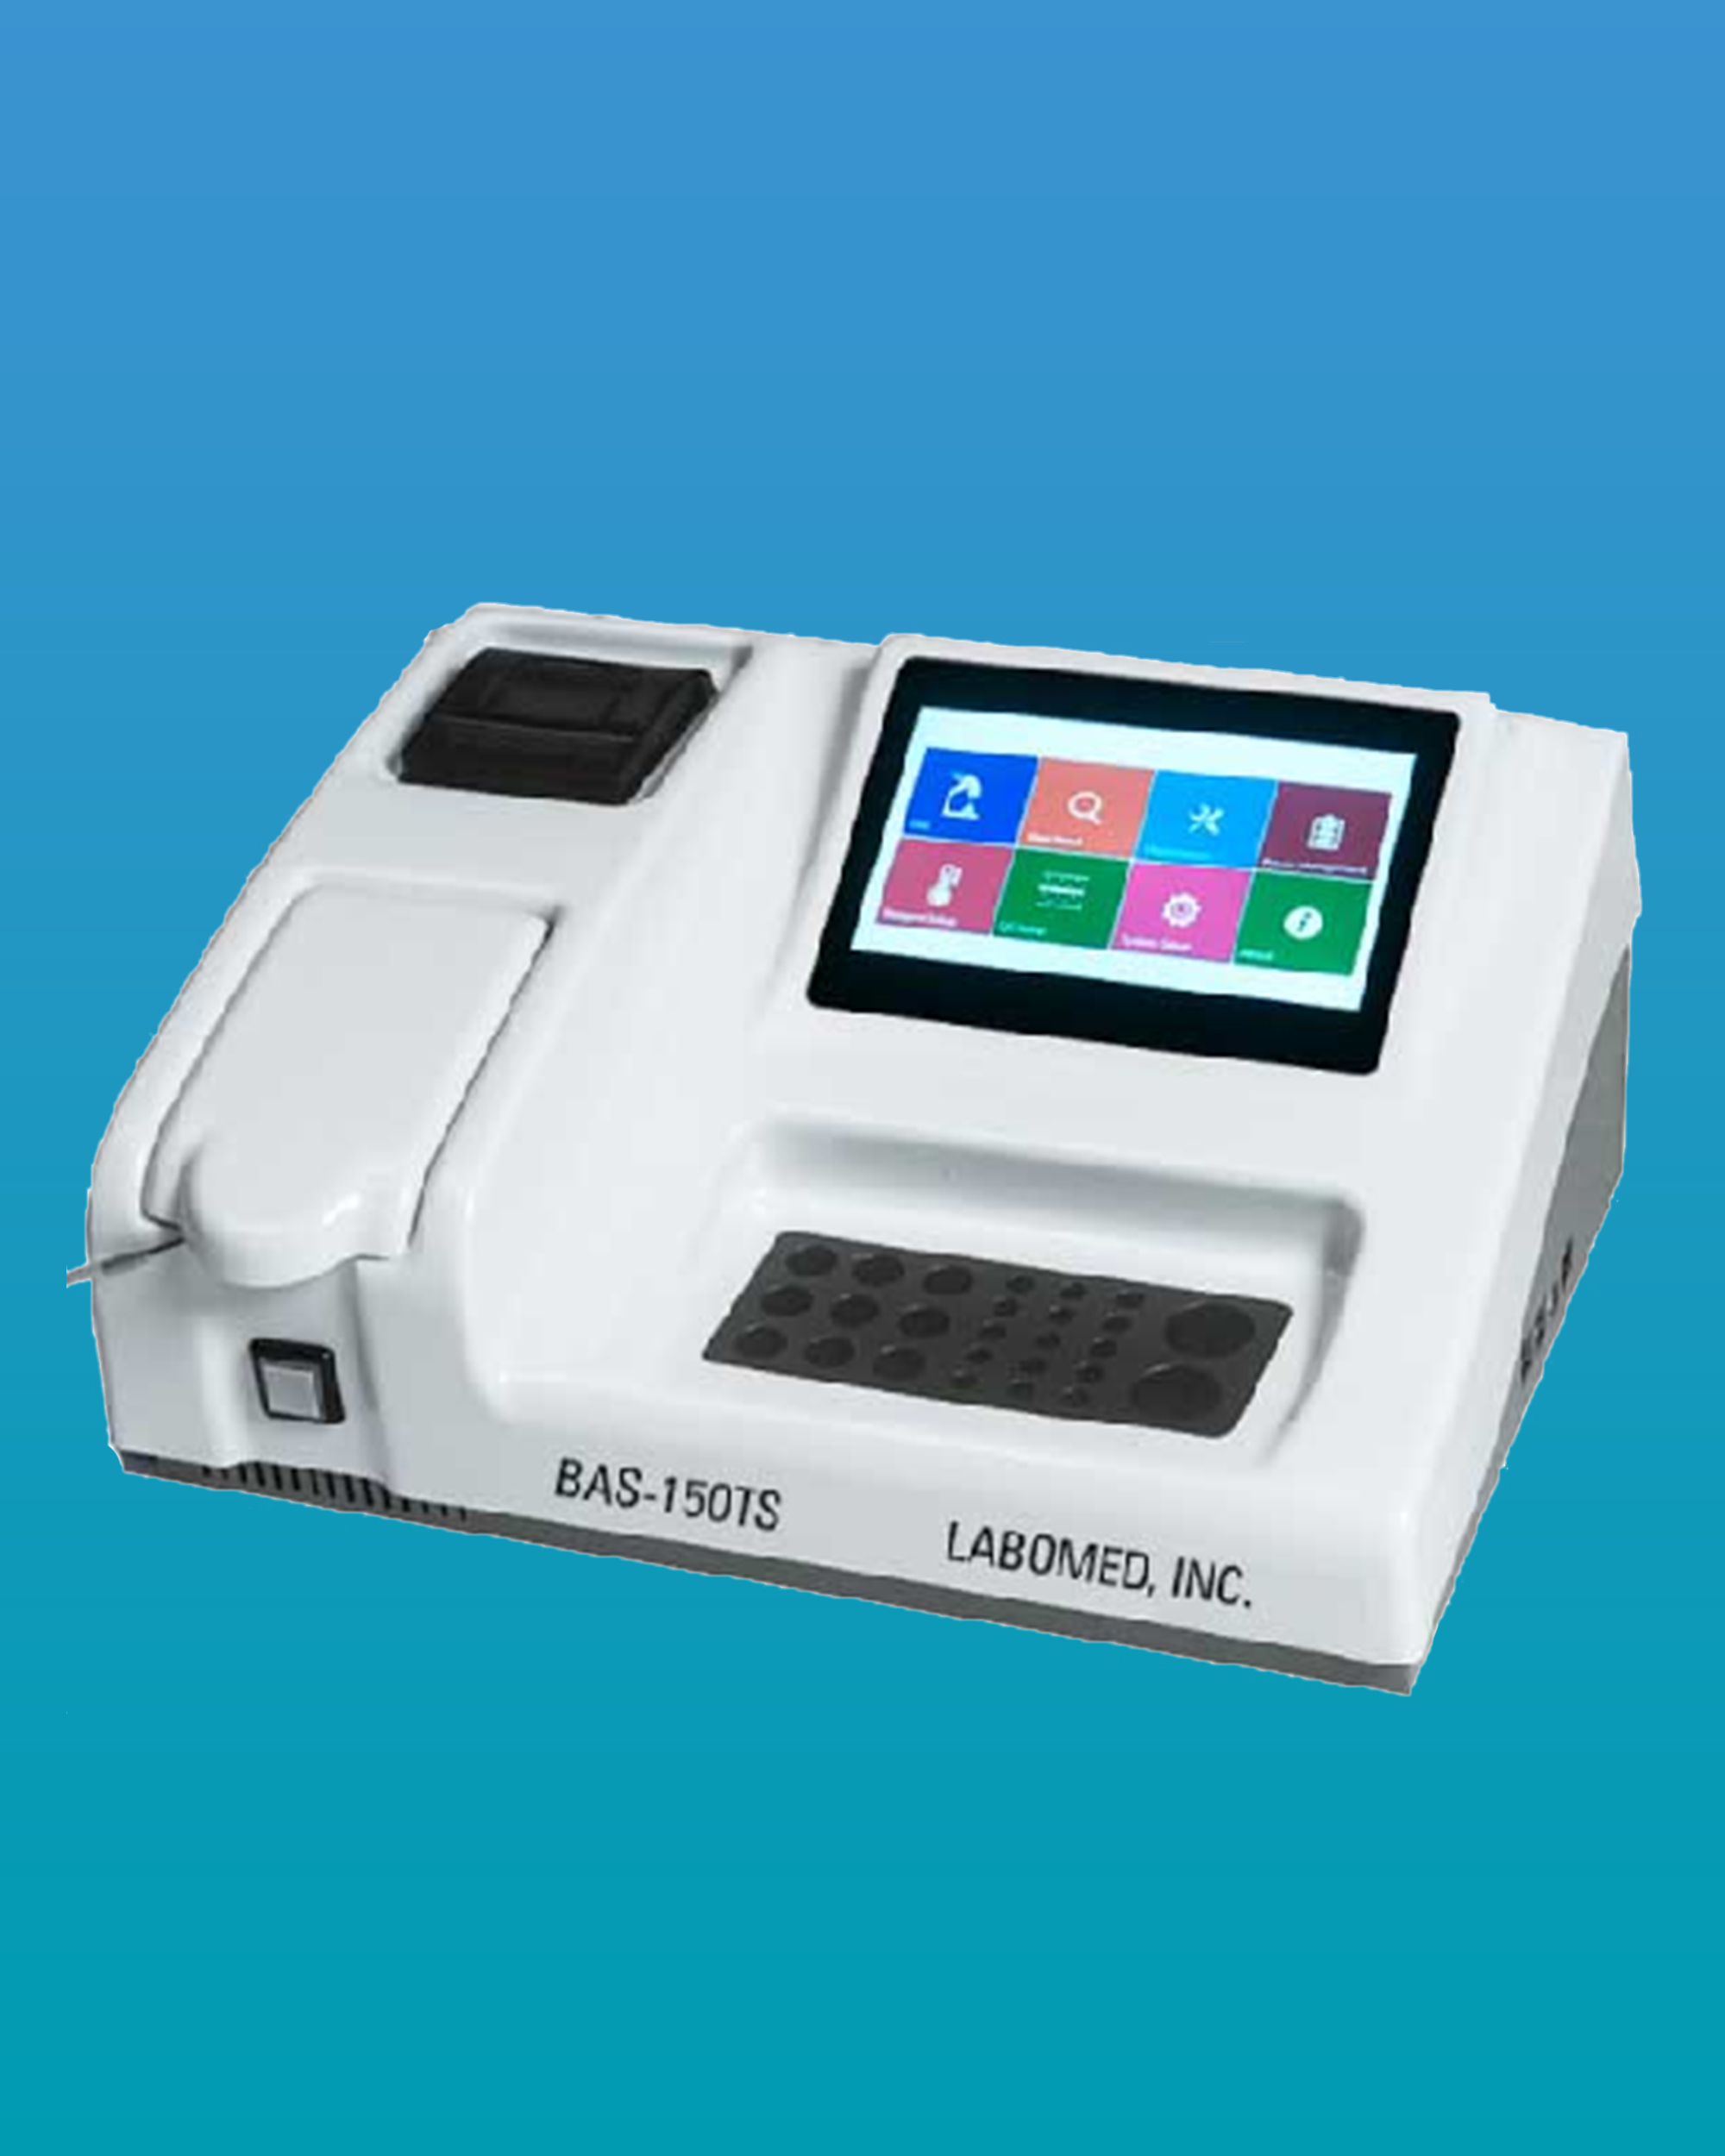 [BAS-150TS] Semi-Automatic Analyzer w/ Coagulation Test